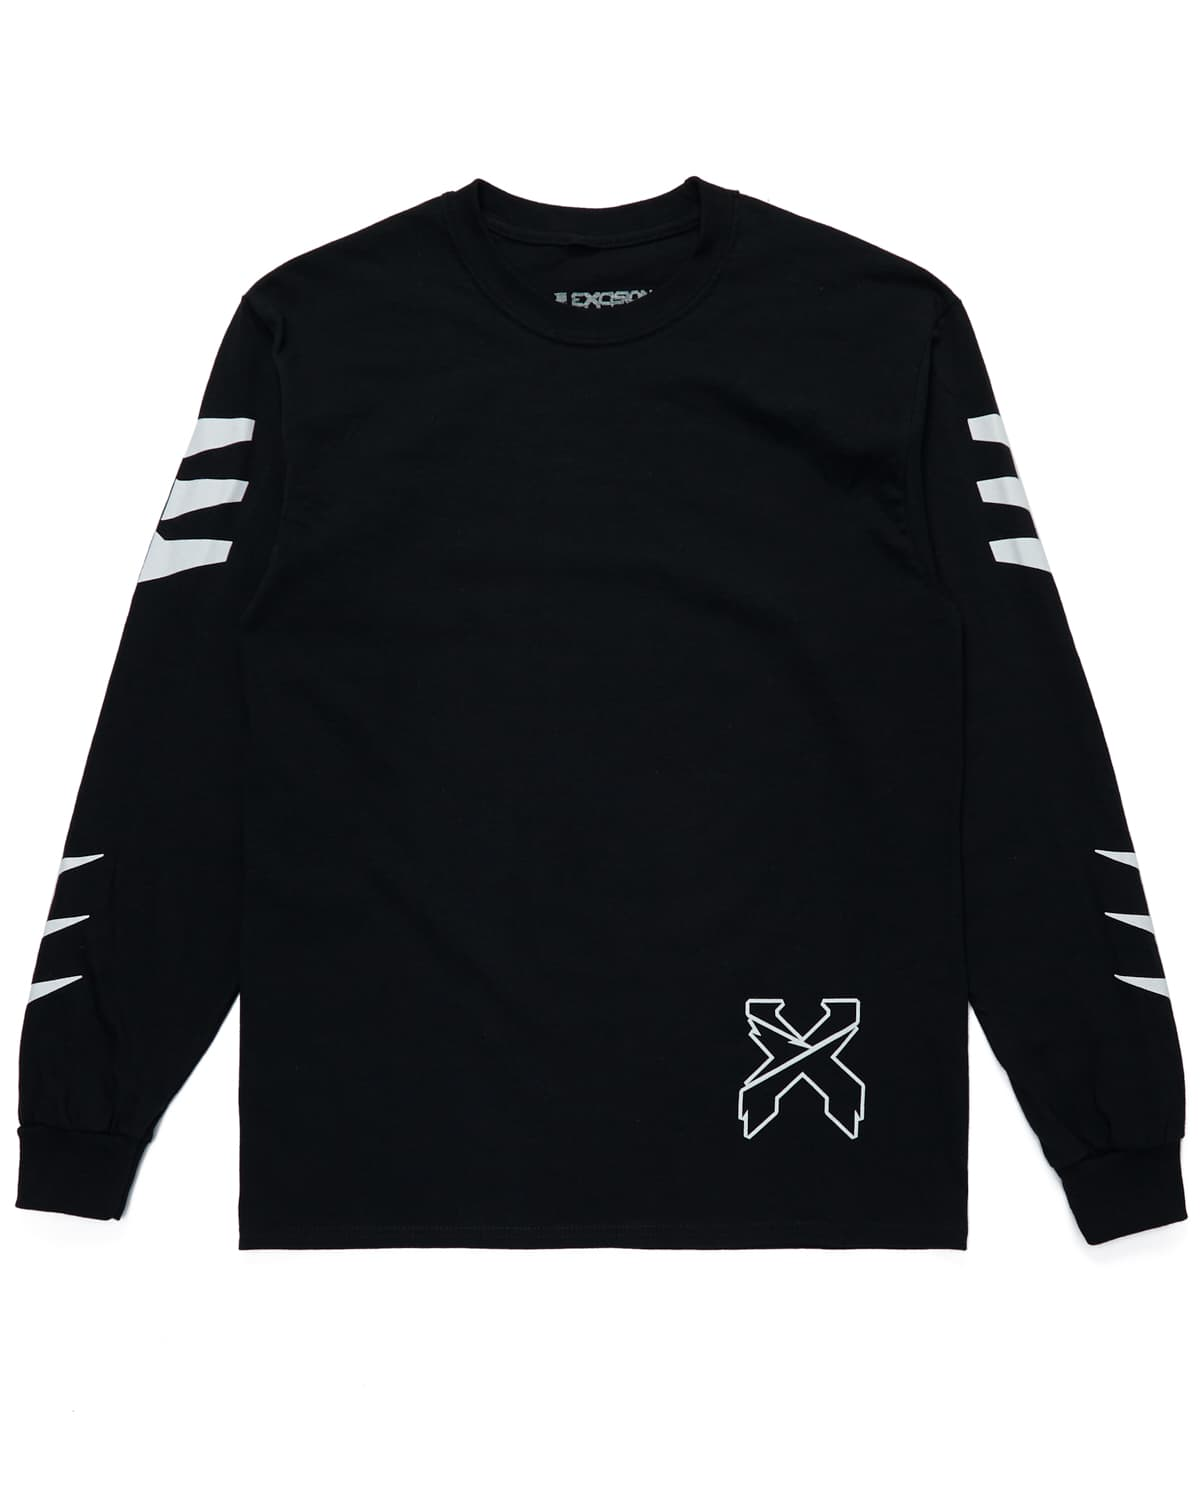 'Fragments' Long Sleeve Tee